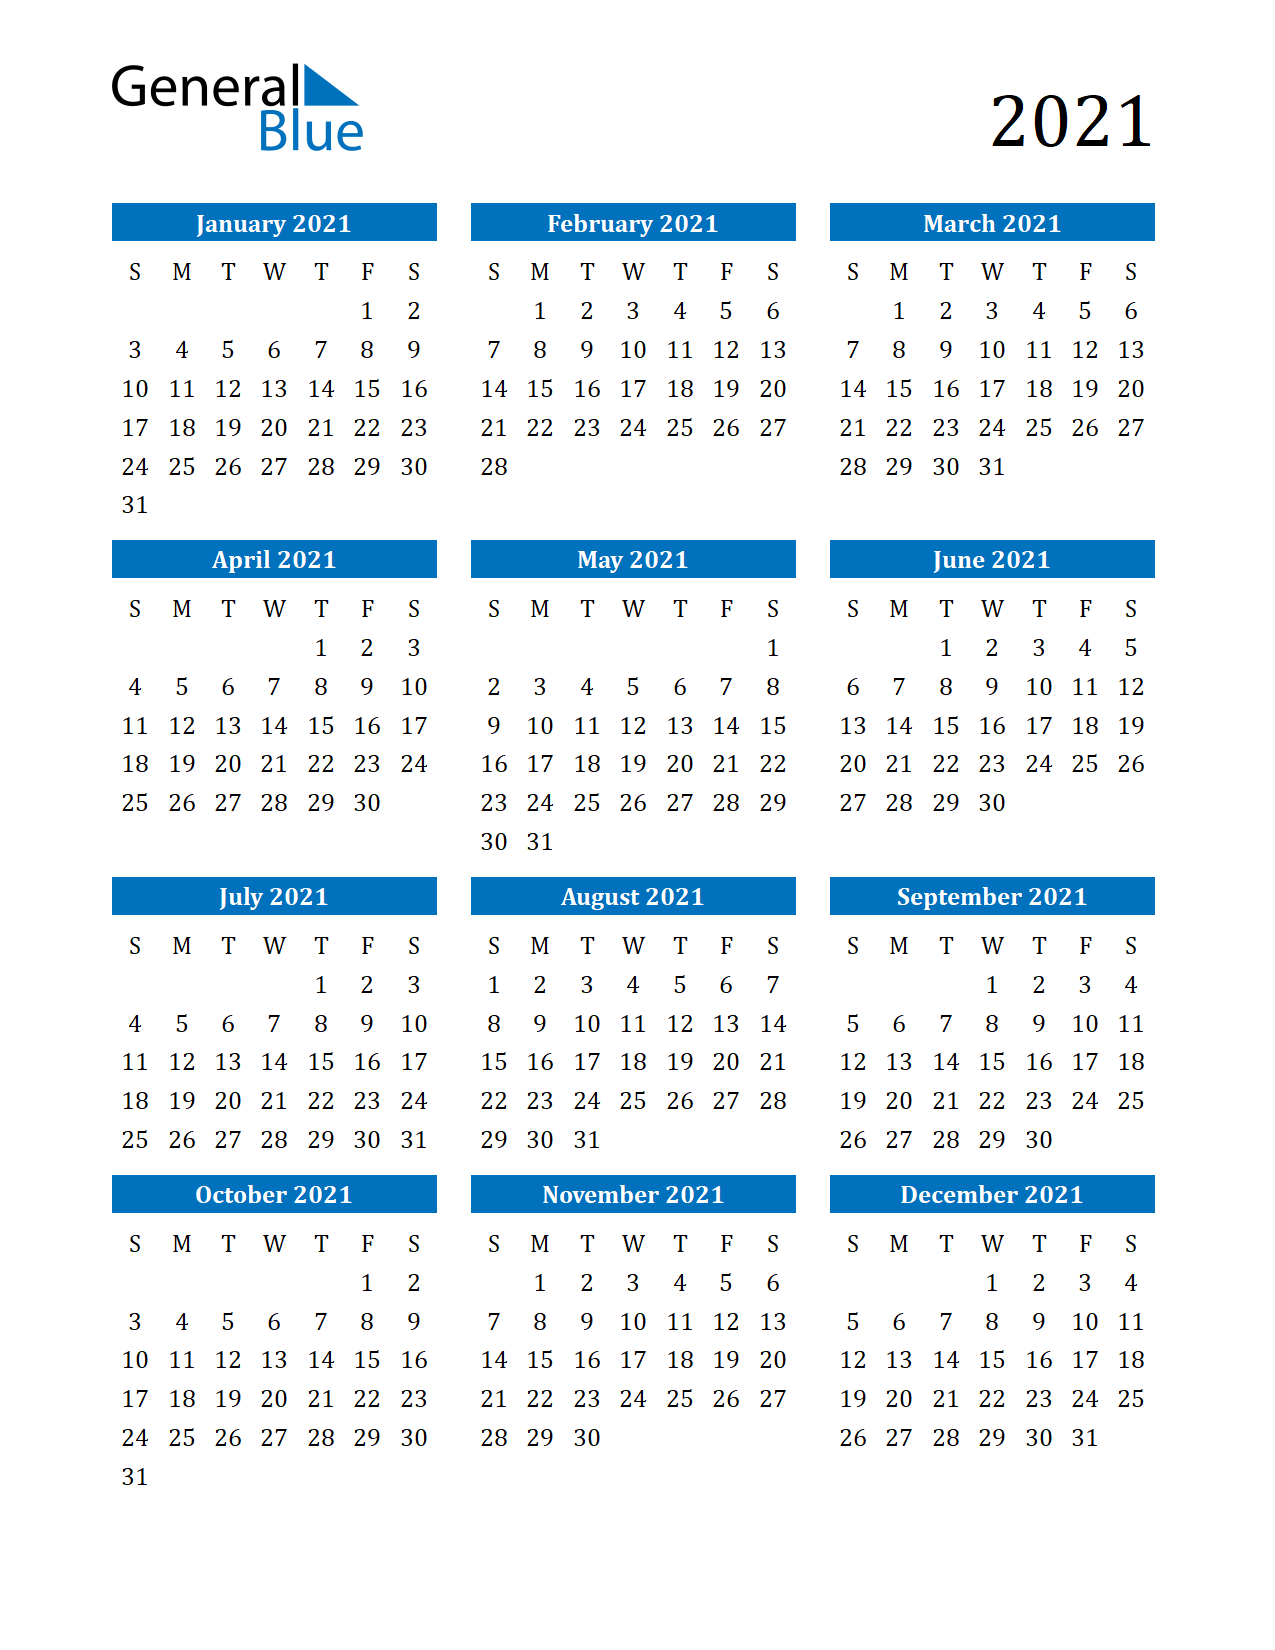 Free downloadable and printable 2021 generic calendar